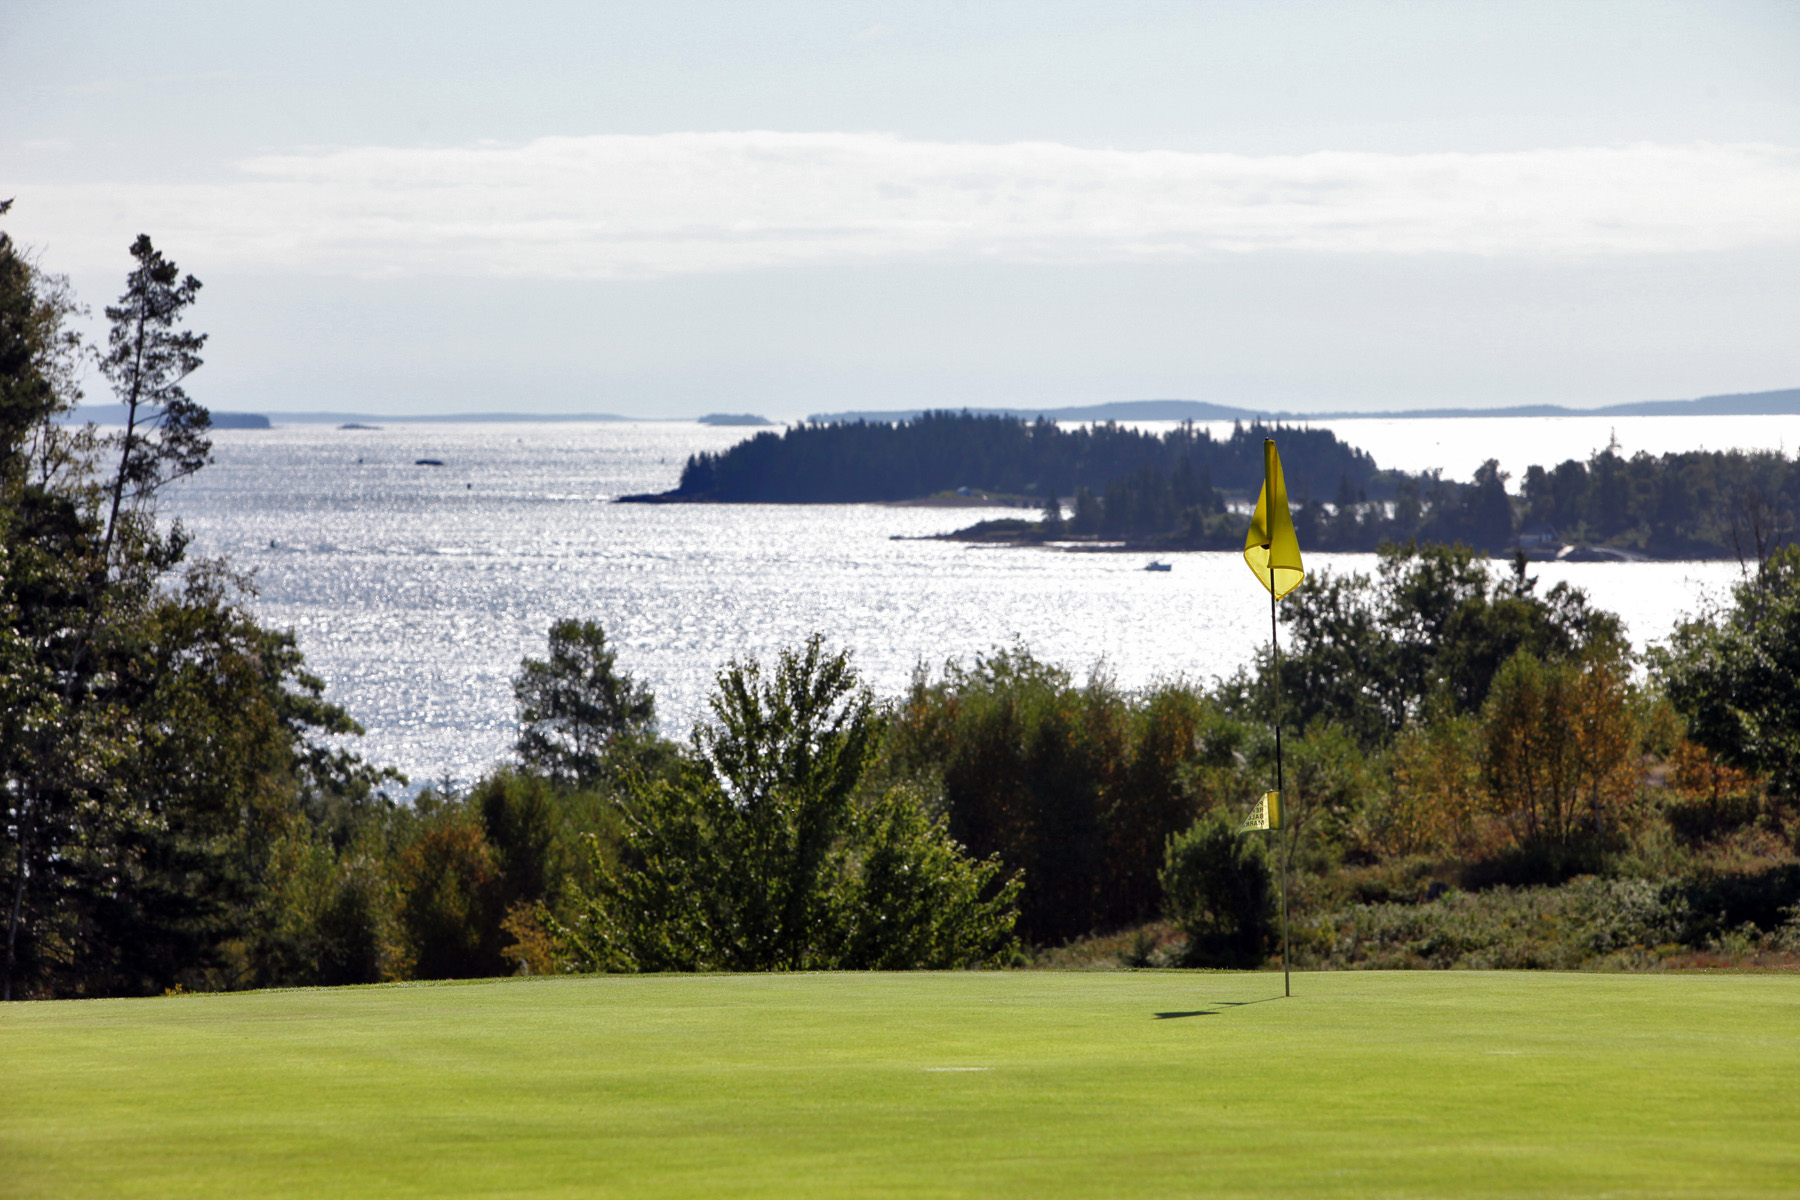 Play a round of golf at North Haven's spectacular 9-hole course.